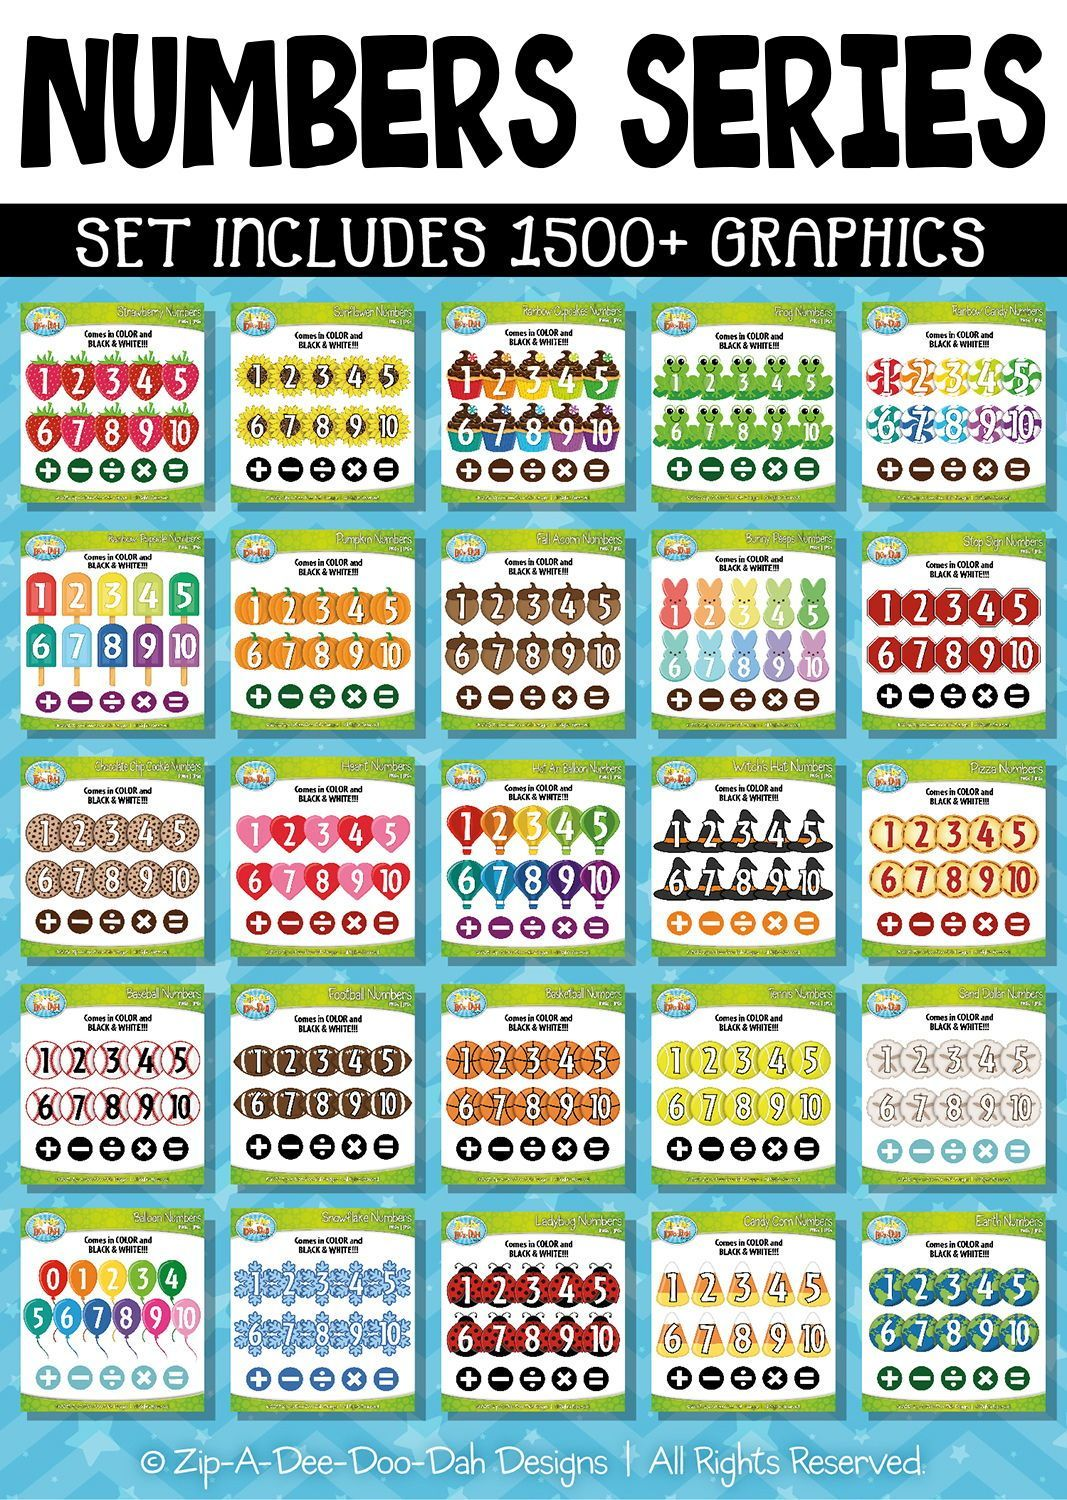 Ultimate Numbers Counting Series Clipart Zip A Dee Doo